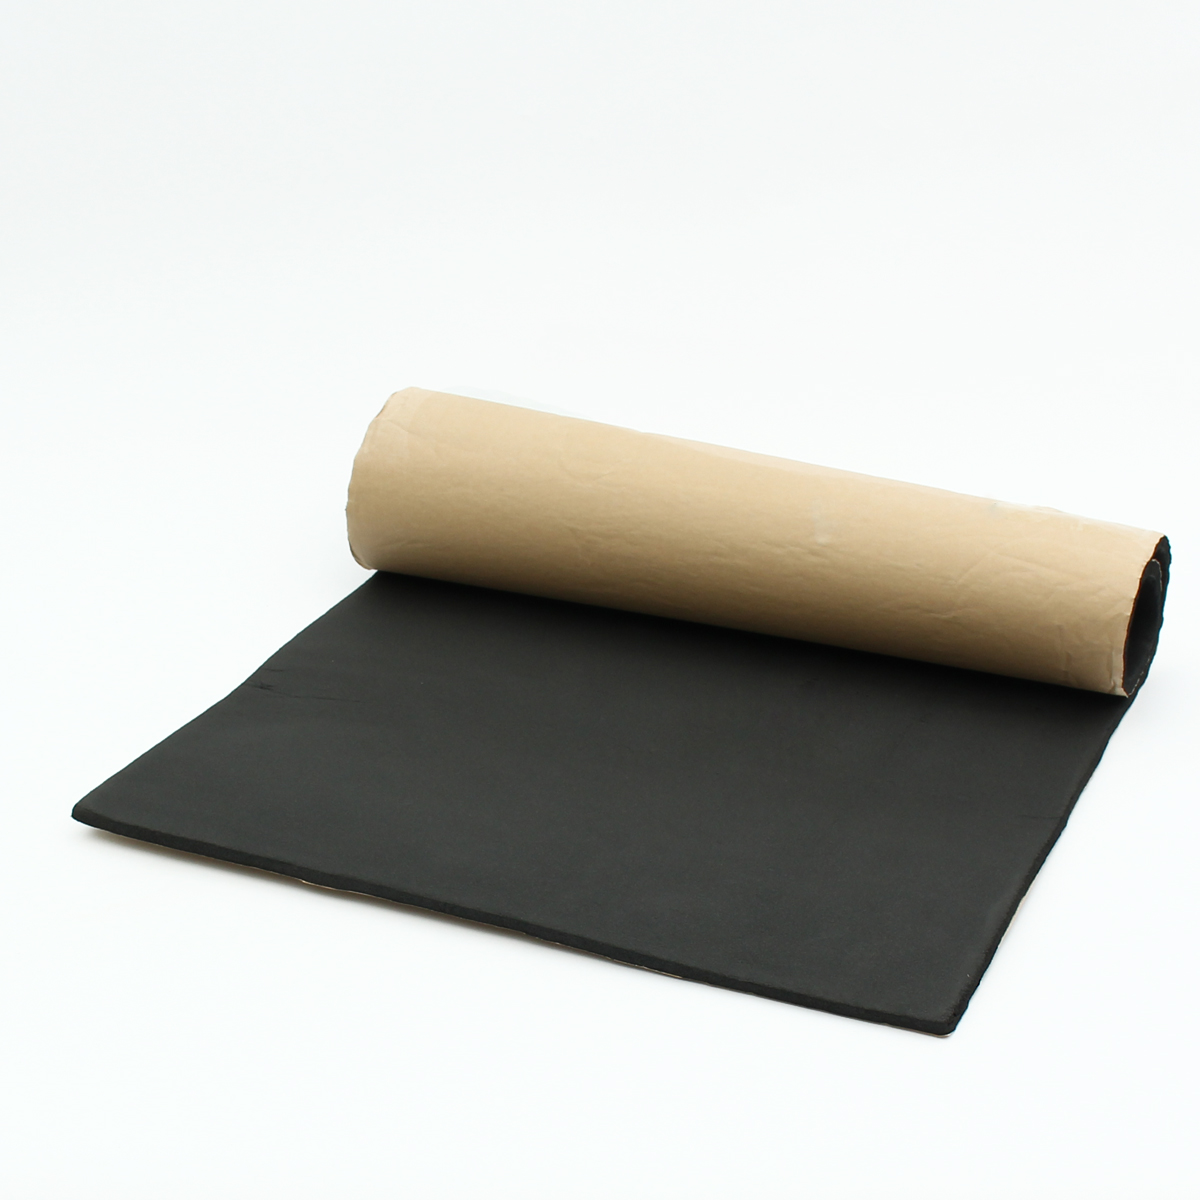 1 Roll 100 x 50cm Rubber Sound Proofing & Heat Insulation Sheet Vehicle Closed Cell Soundproof Foam